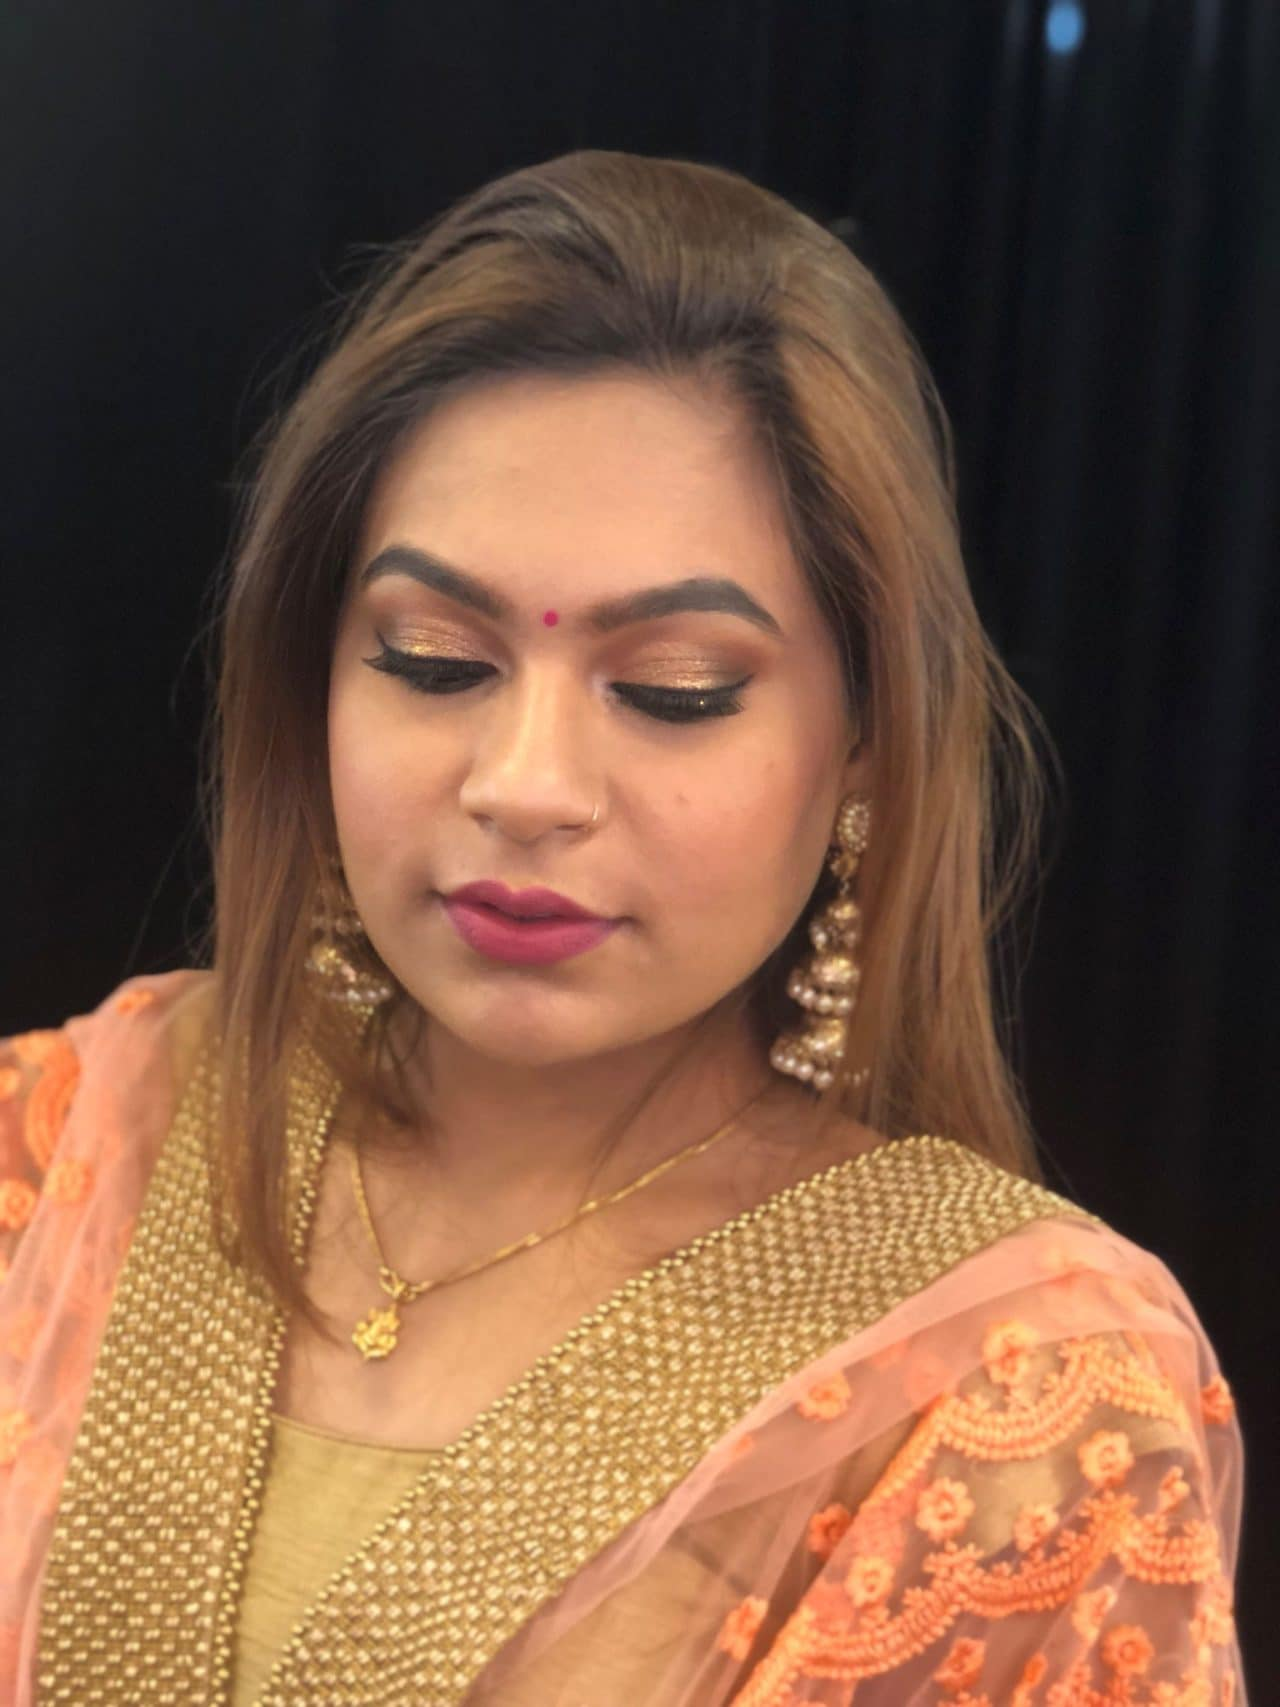 Undoubtedly, there is a rewarding career ahead if you build a good portfolio. MAMA provides certified makeup artist course in New Delhi.